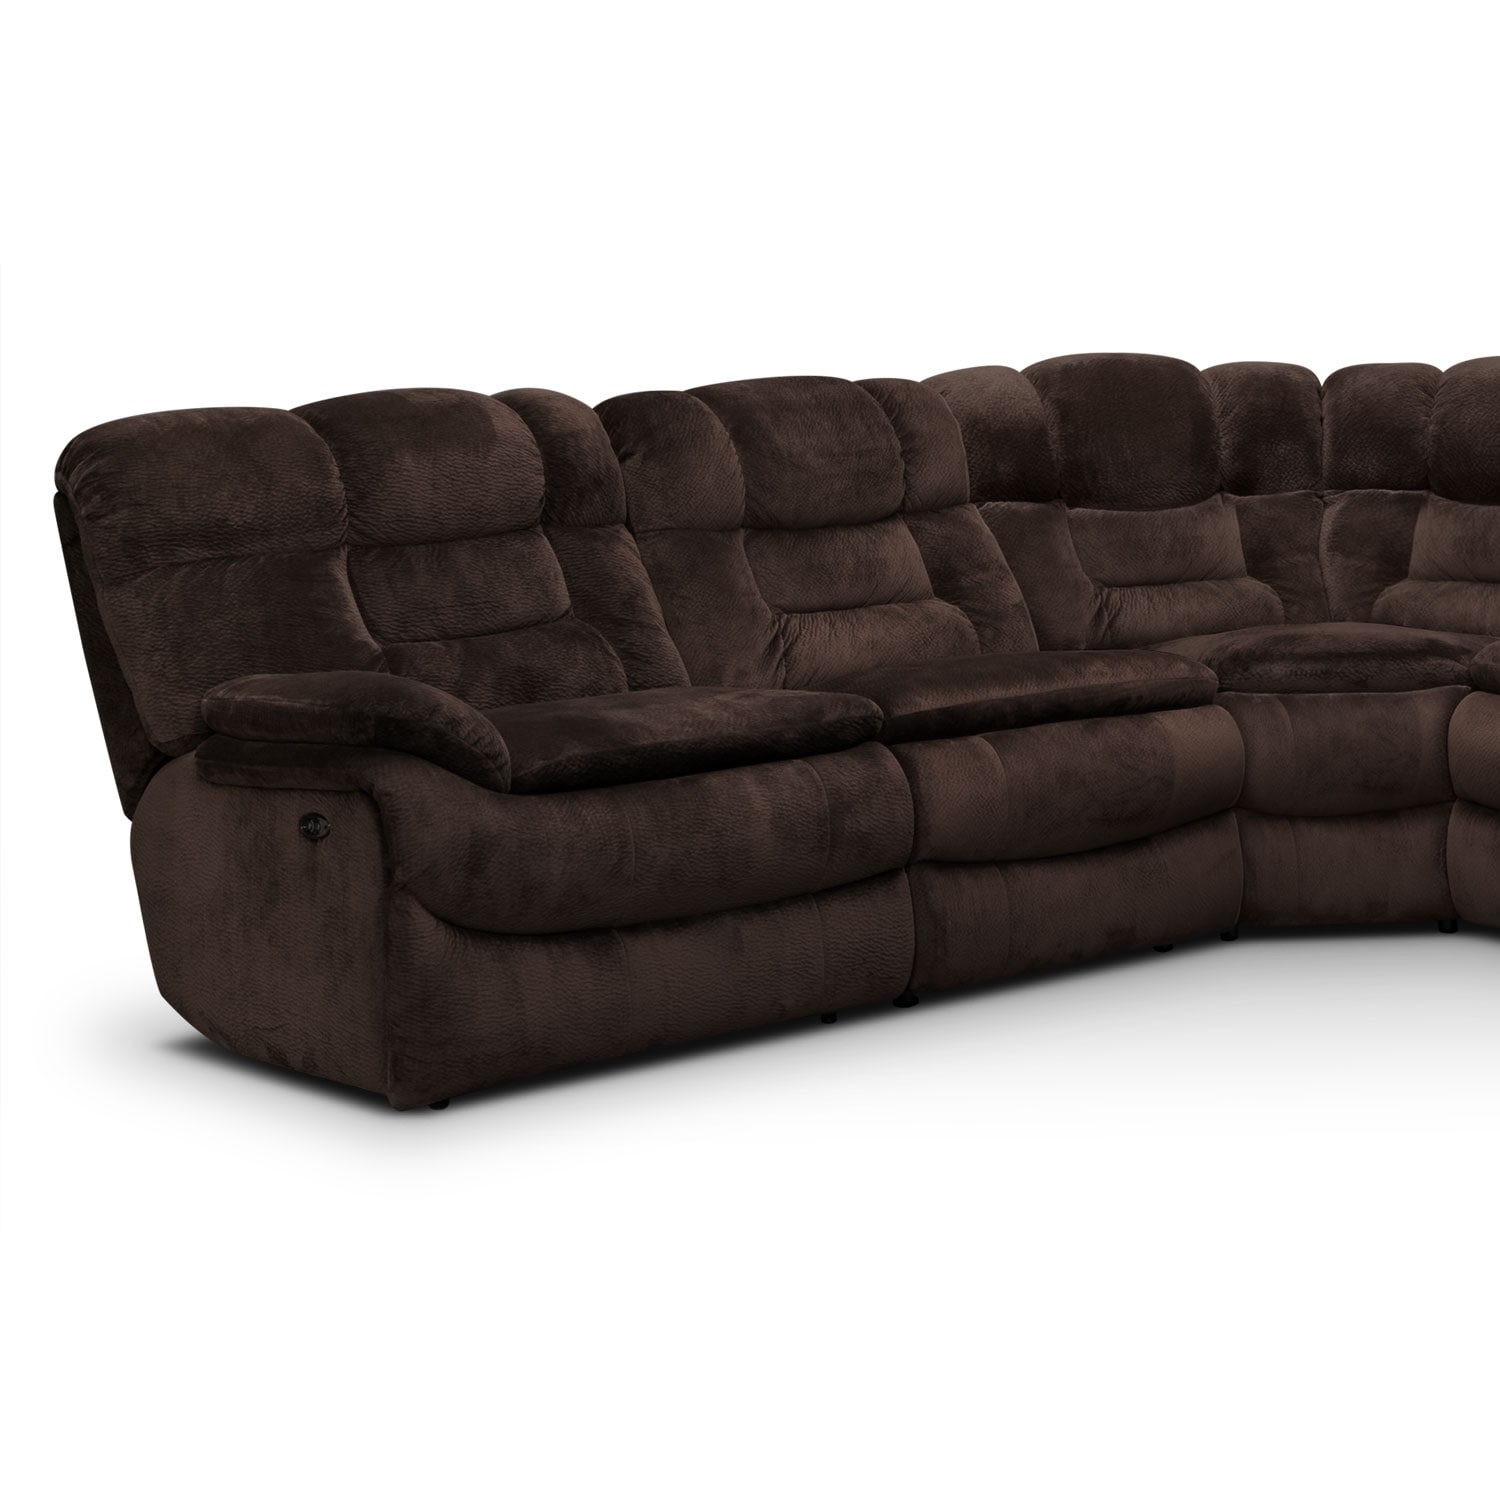 Big softie 6 pc power reclining sectional value city for Sectional sofas with 4 recliners